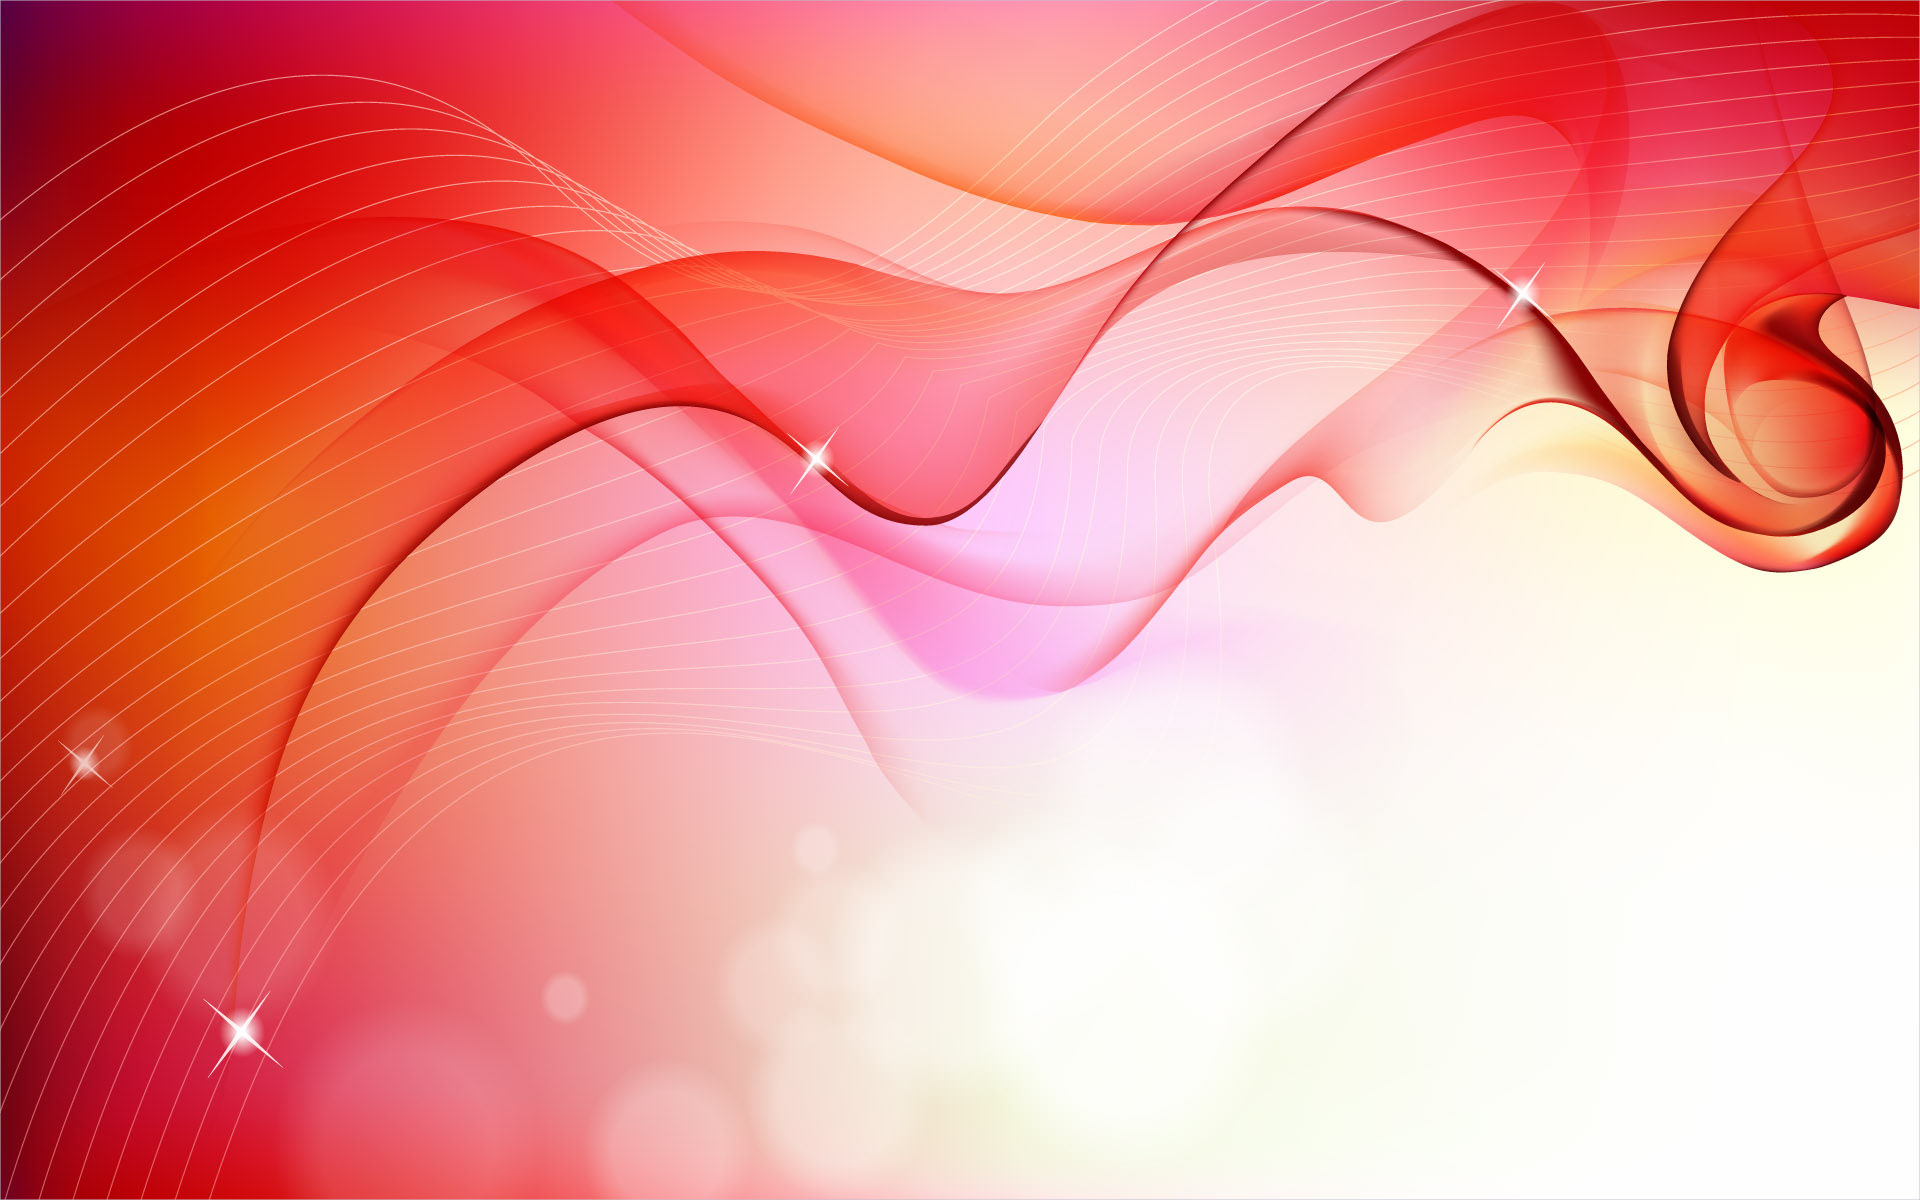 22 Red Abstract Backgrounds Wallpapers Pictures Images